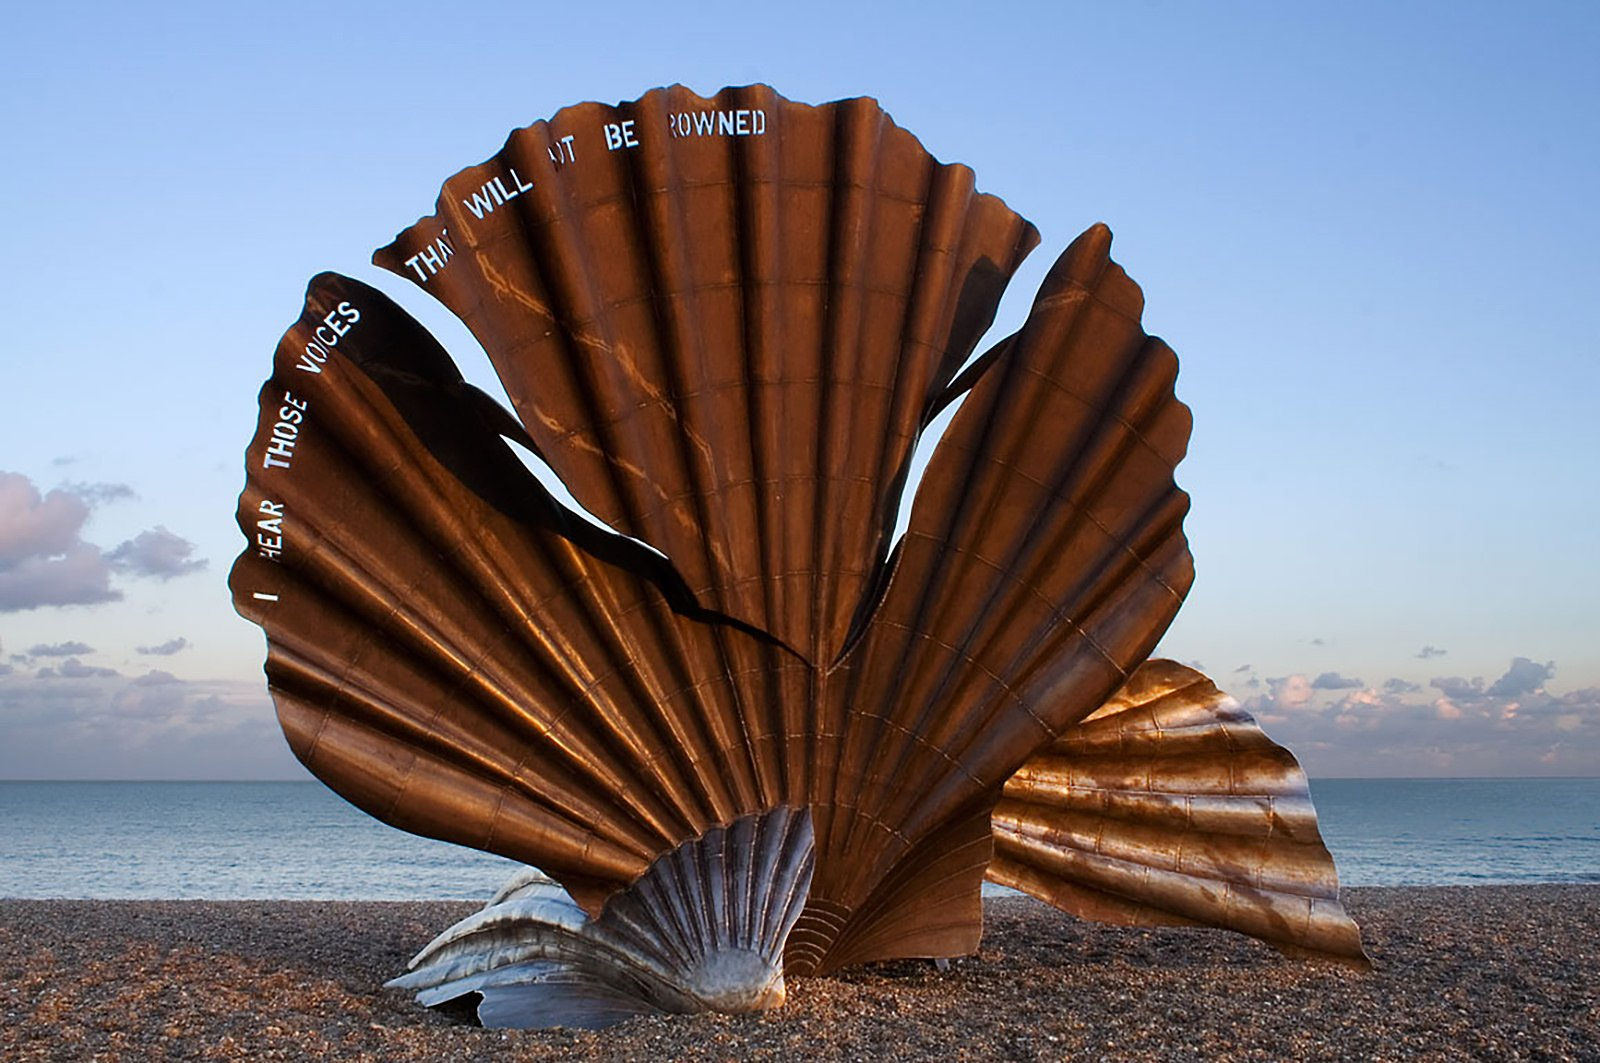 The Scallop by Maggi Hambling, 2003.